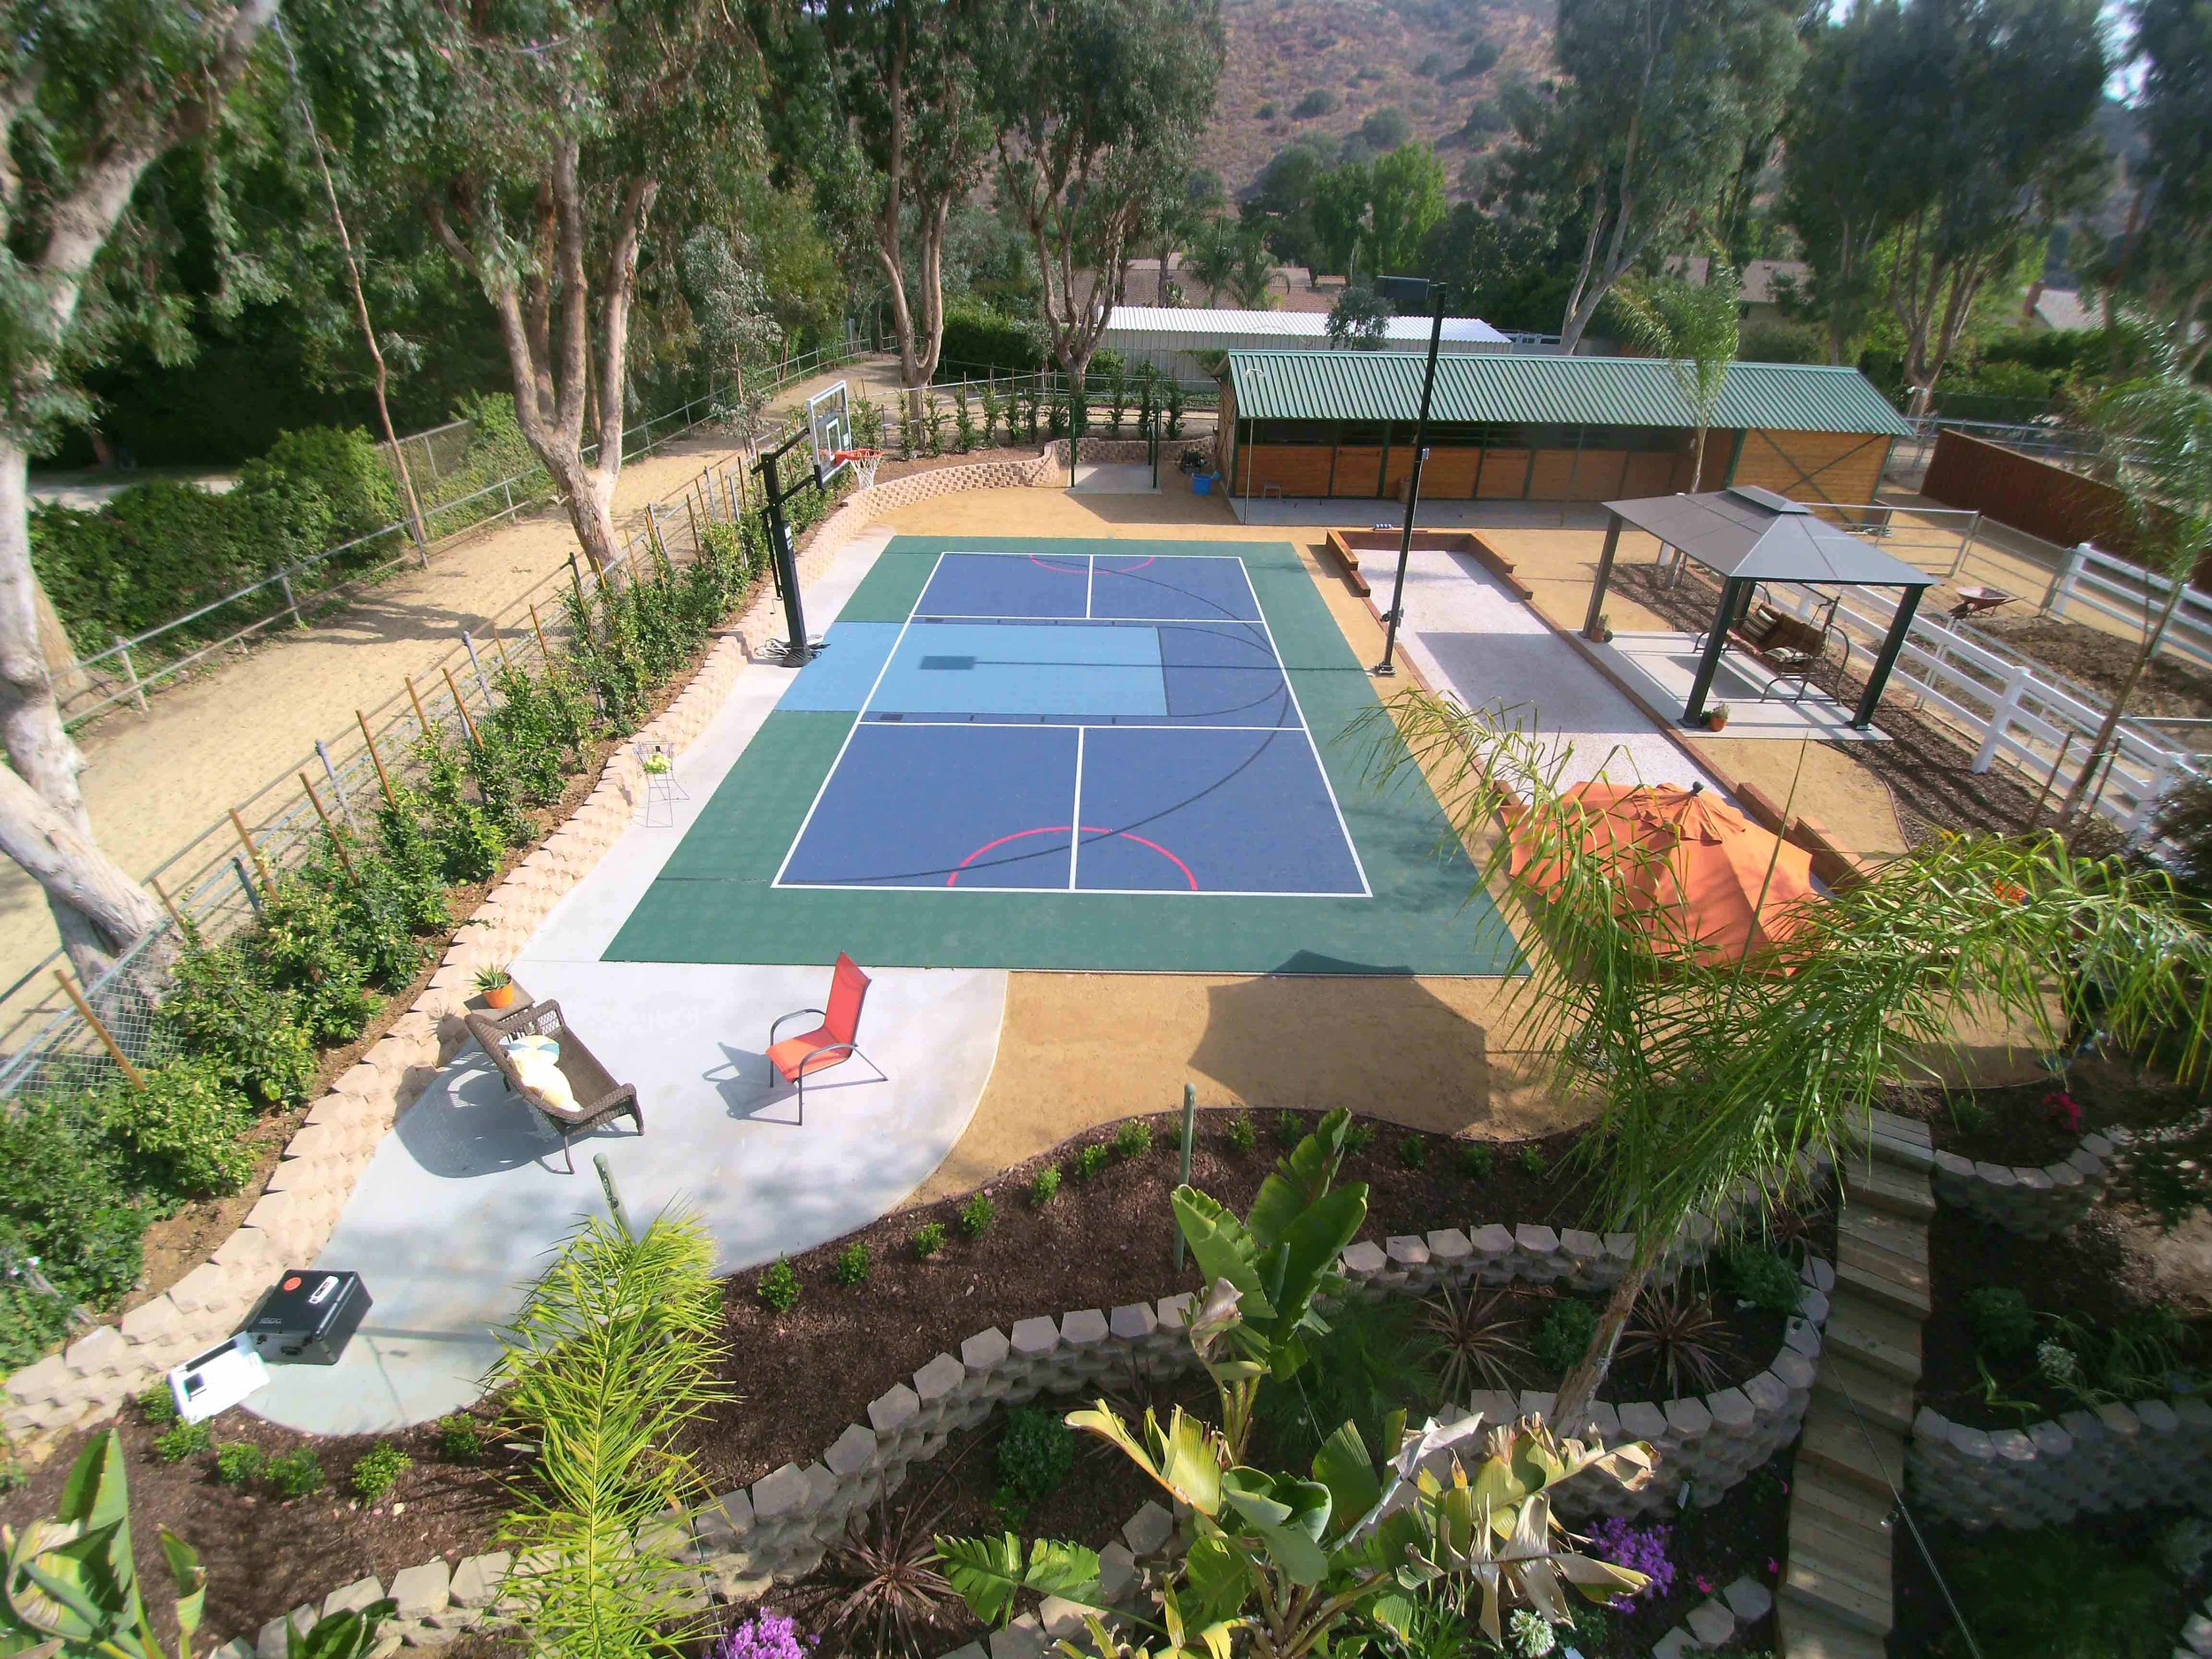 Sport court with drought tolerant landscape